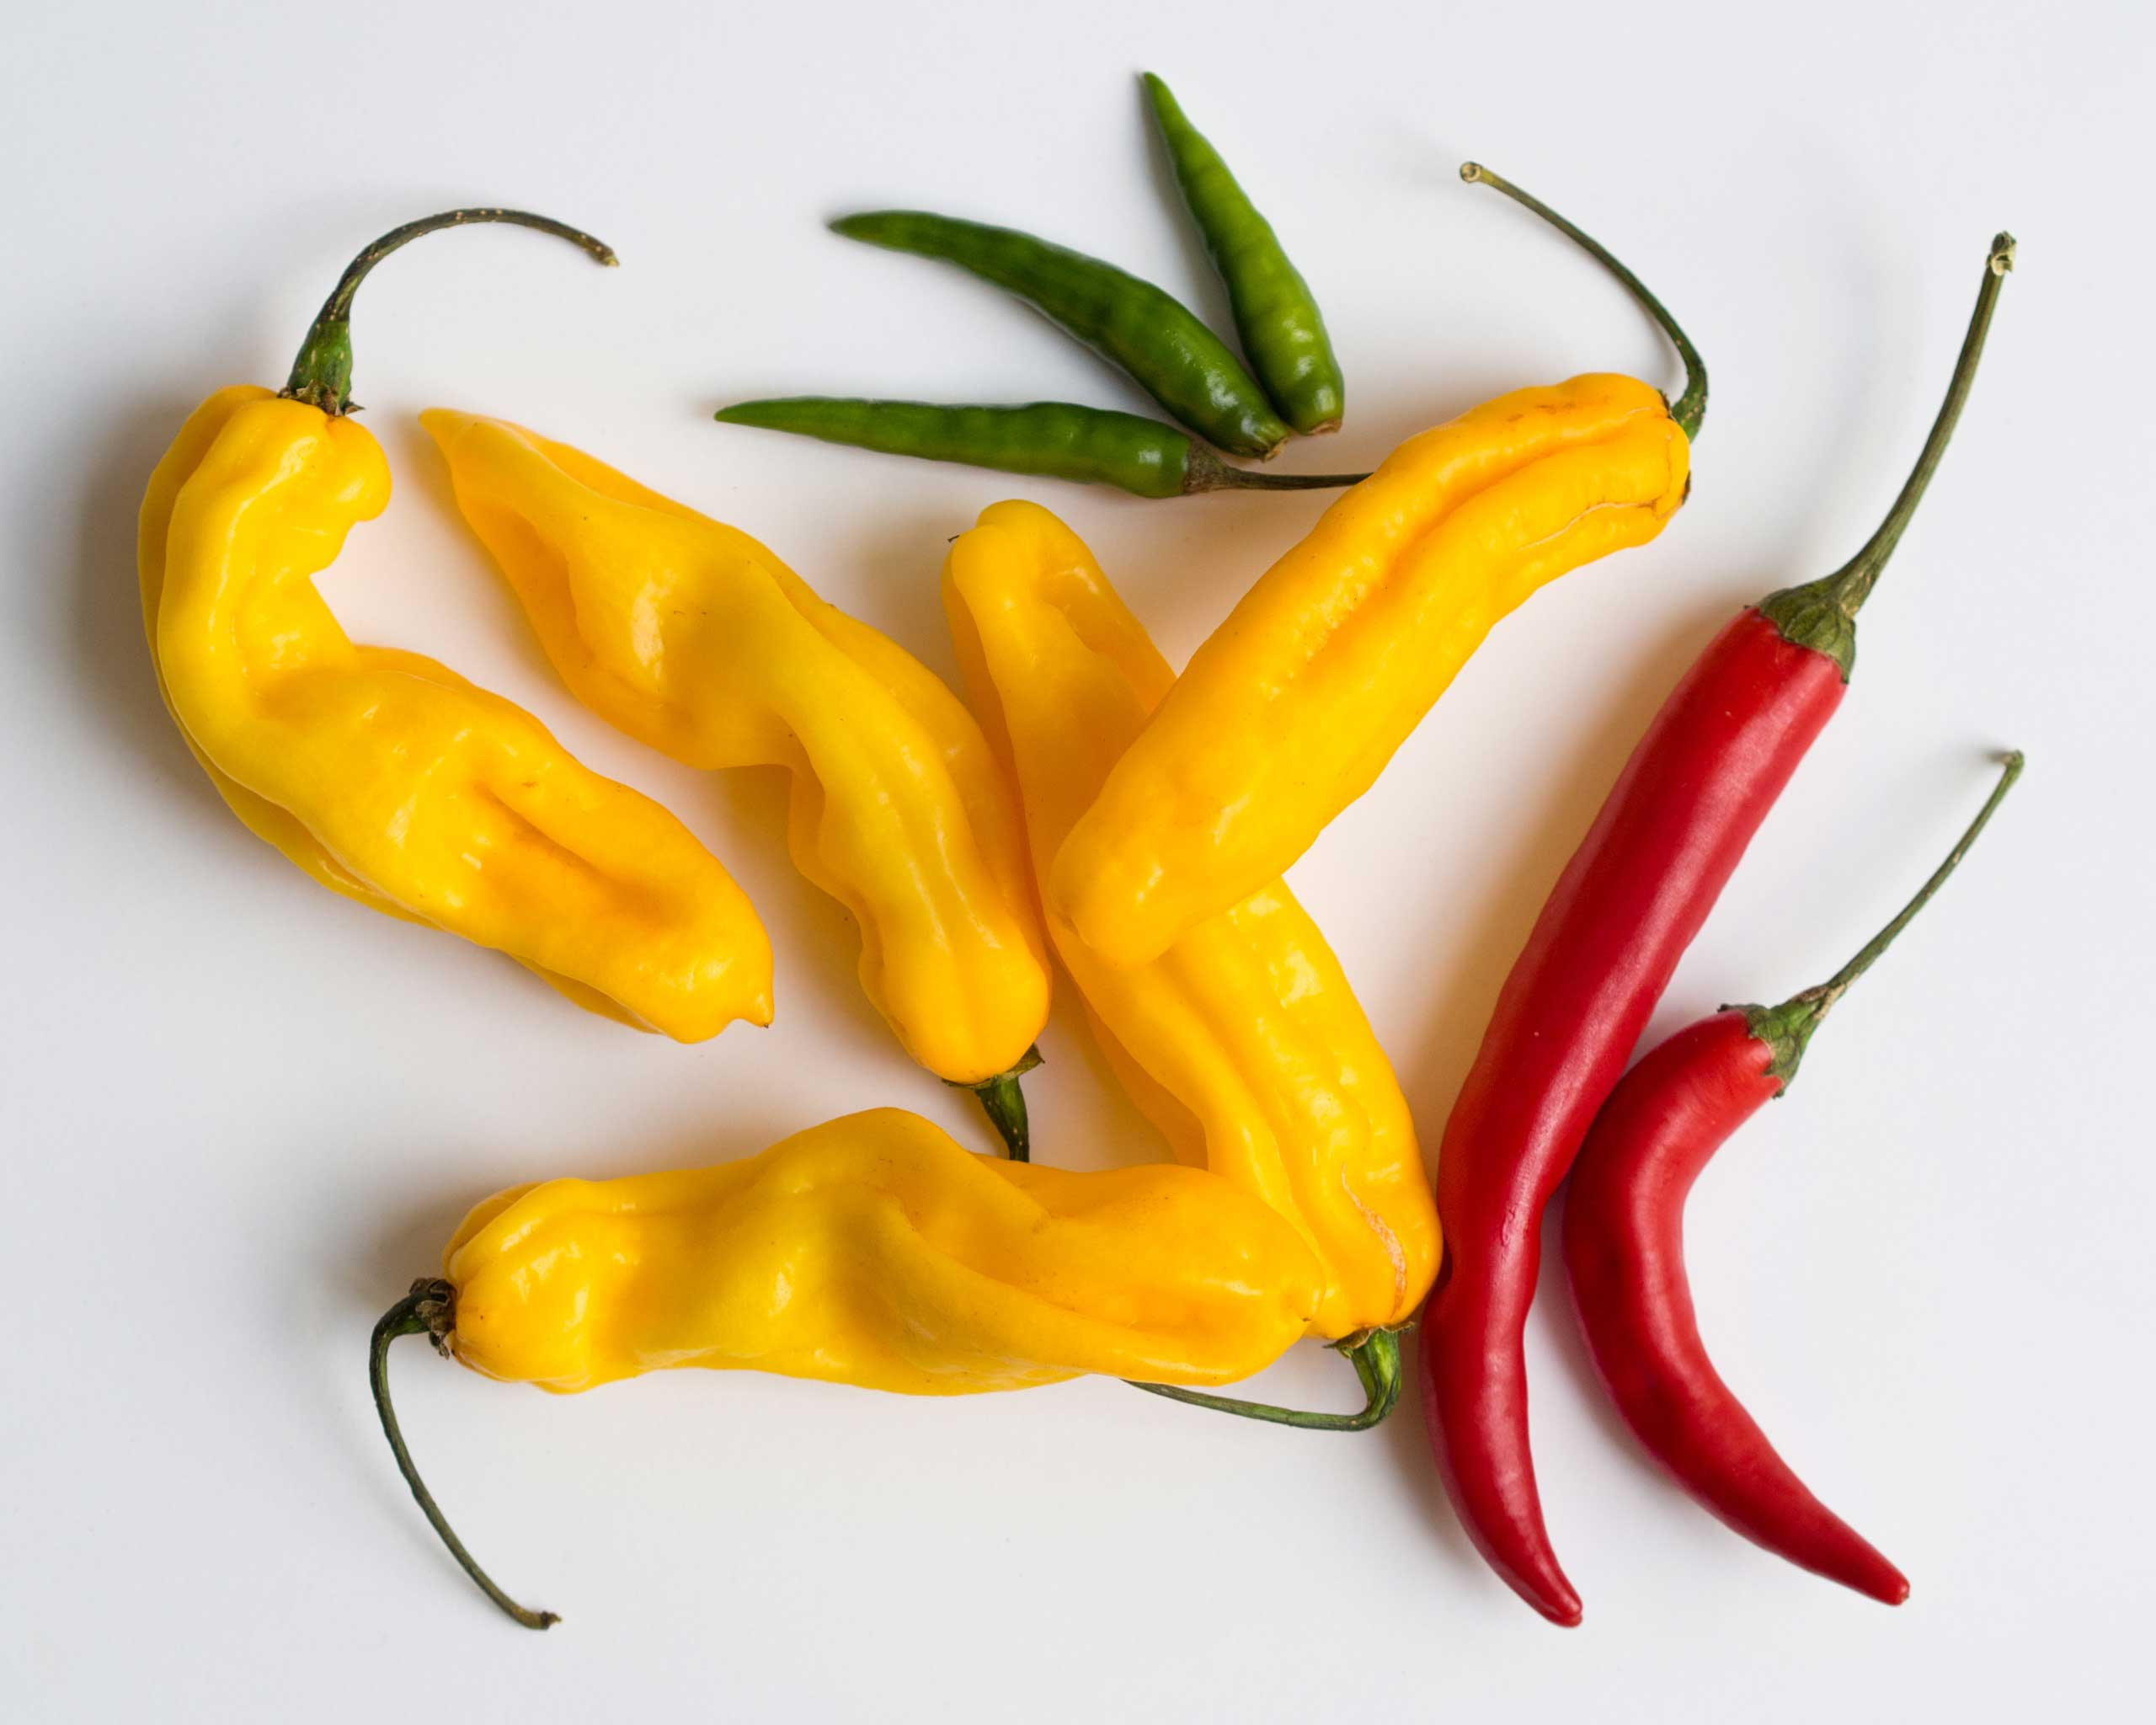 Madame_Jeanette_and_other_chillies